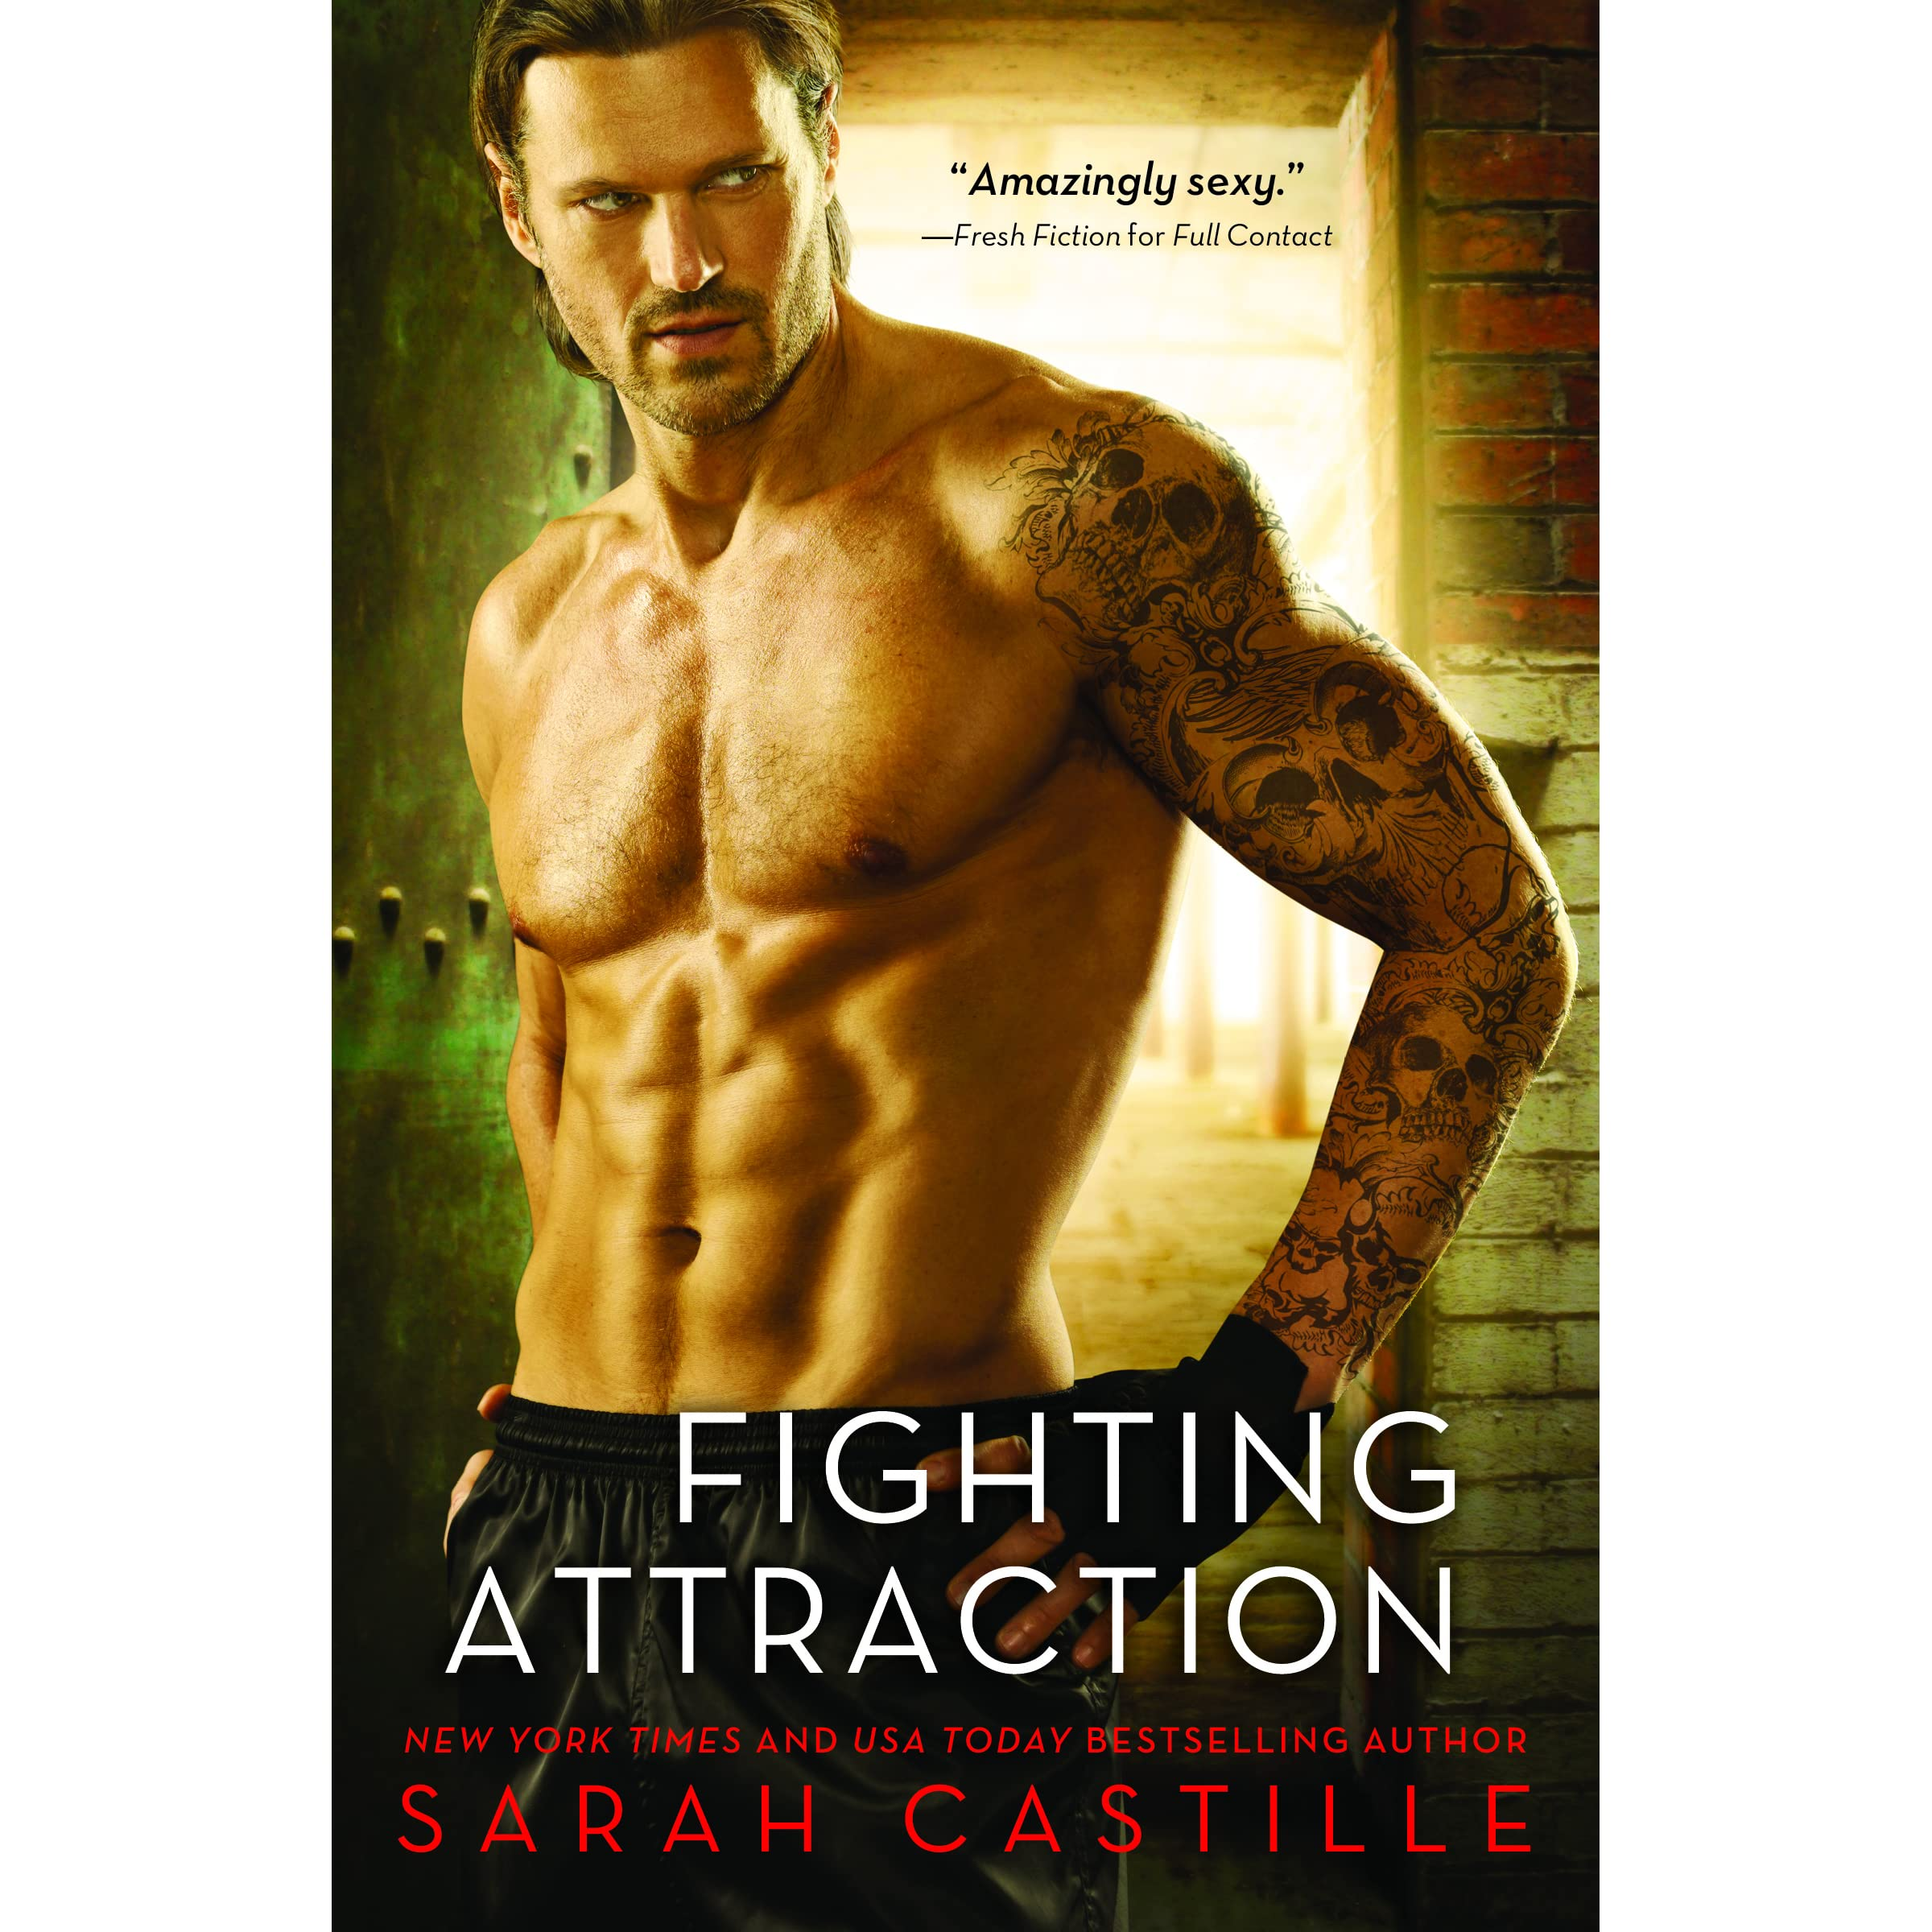 Image result for fighting attraction sarah castille